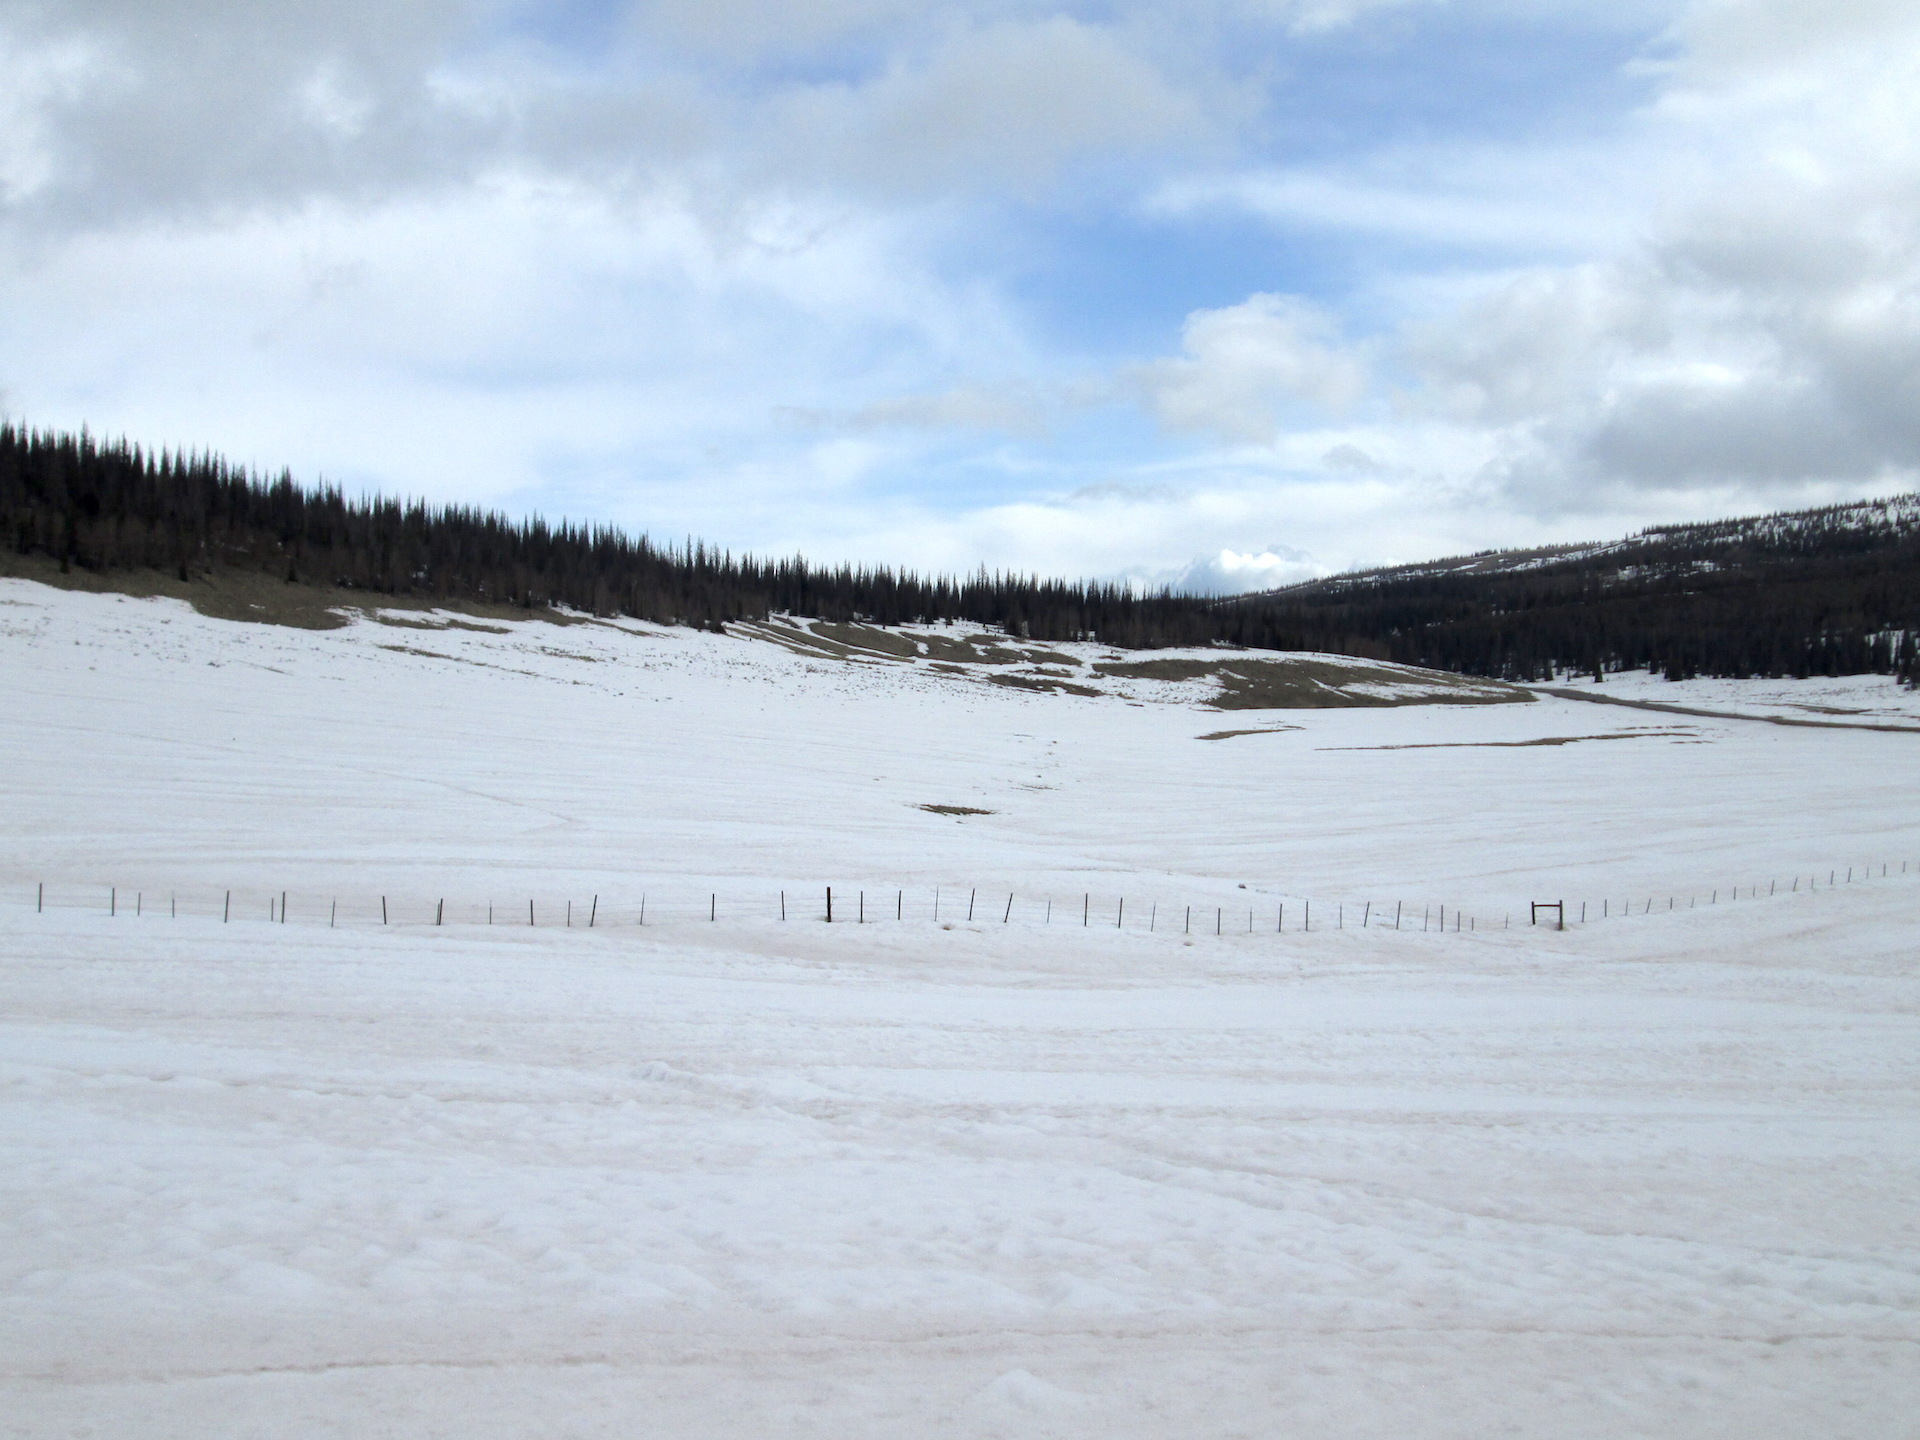 Surrounding landscape at Spring Creek CODOS site on April 15. Dust was observed on surface on March 23 over majority of landscape, on April 15 dust was exposed entirely on snow and bare ground exists in many places.